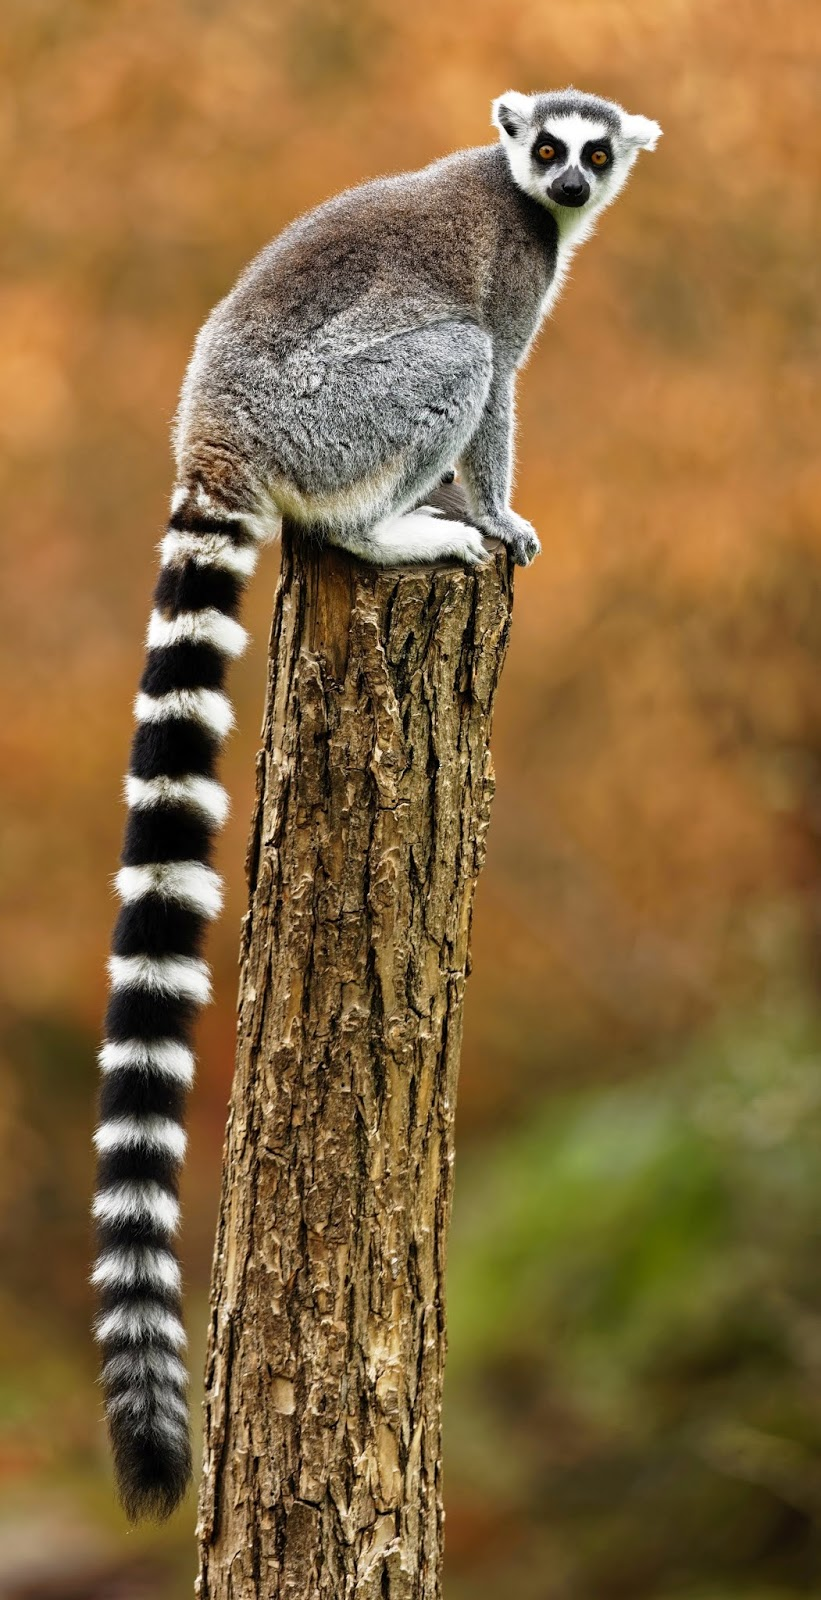 A ring-tailed lemur.